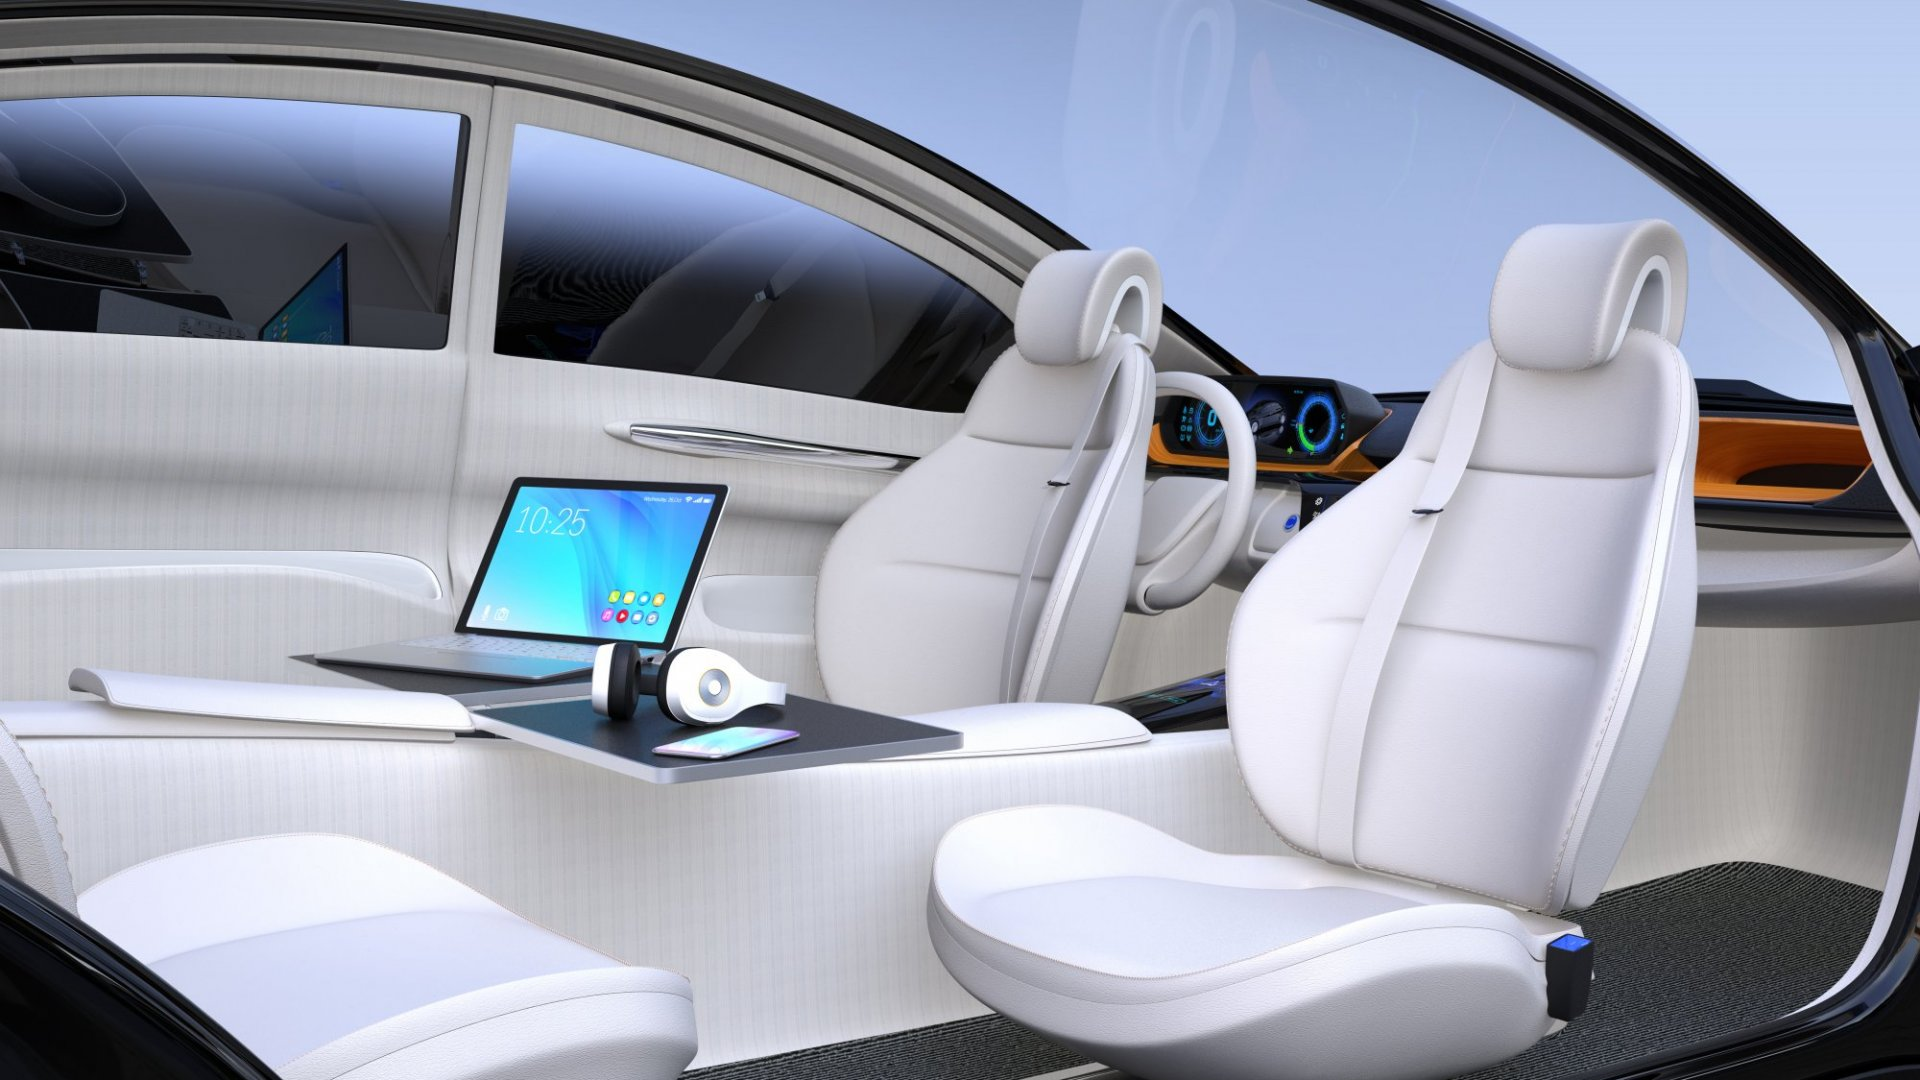 The 4 Most Important Questions About Driverless Cars